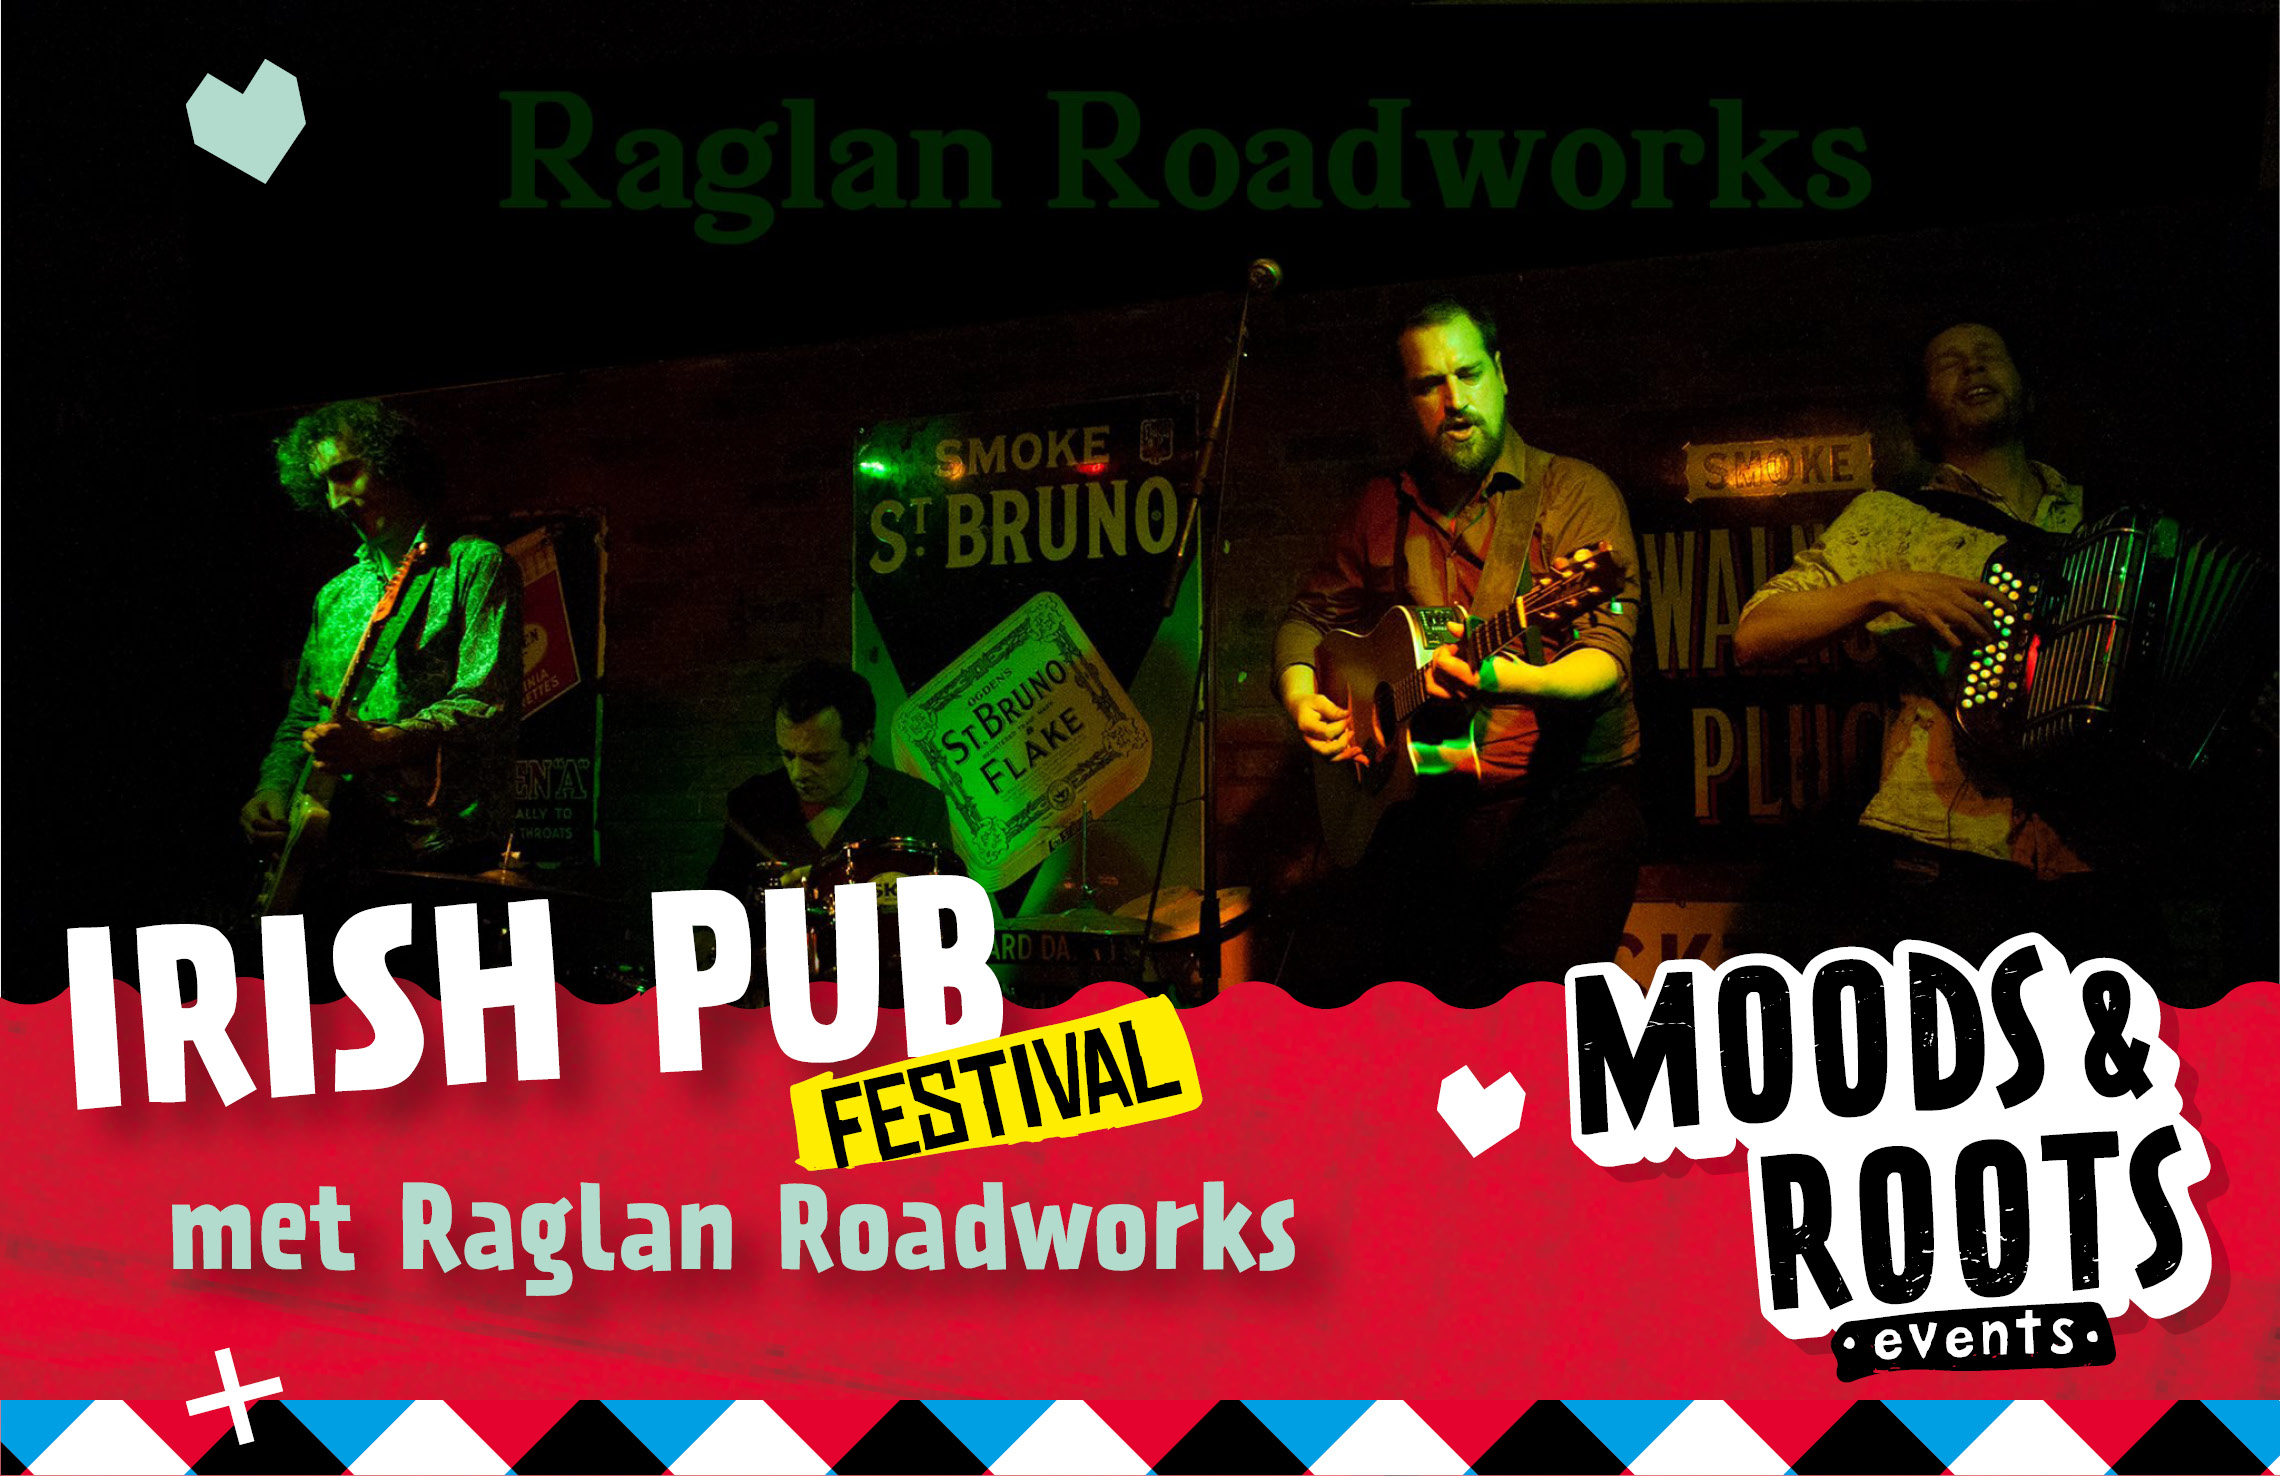 Irish Pub Festival met raglan roadworks